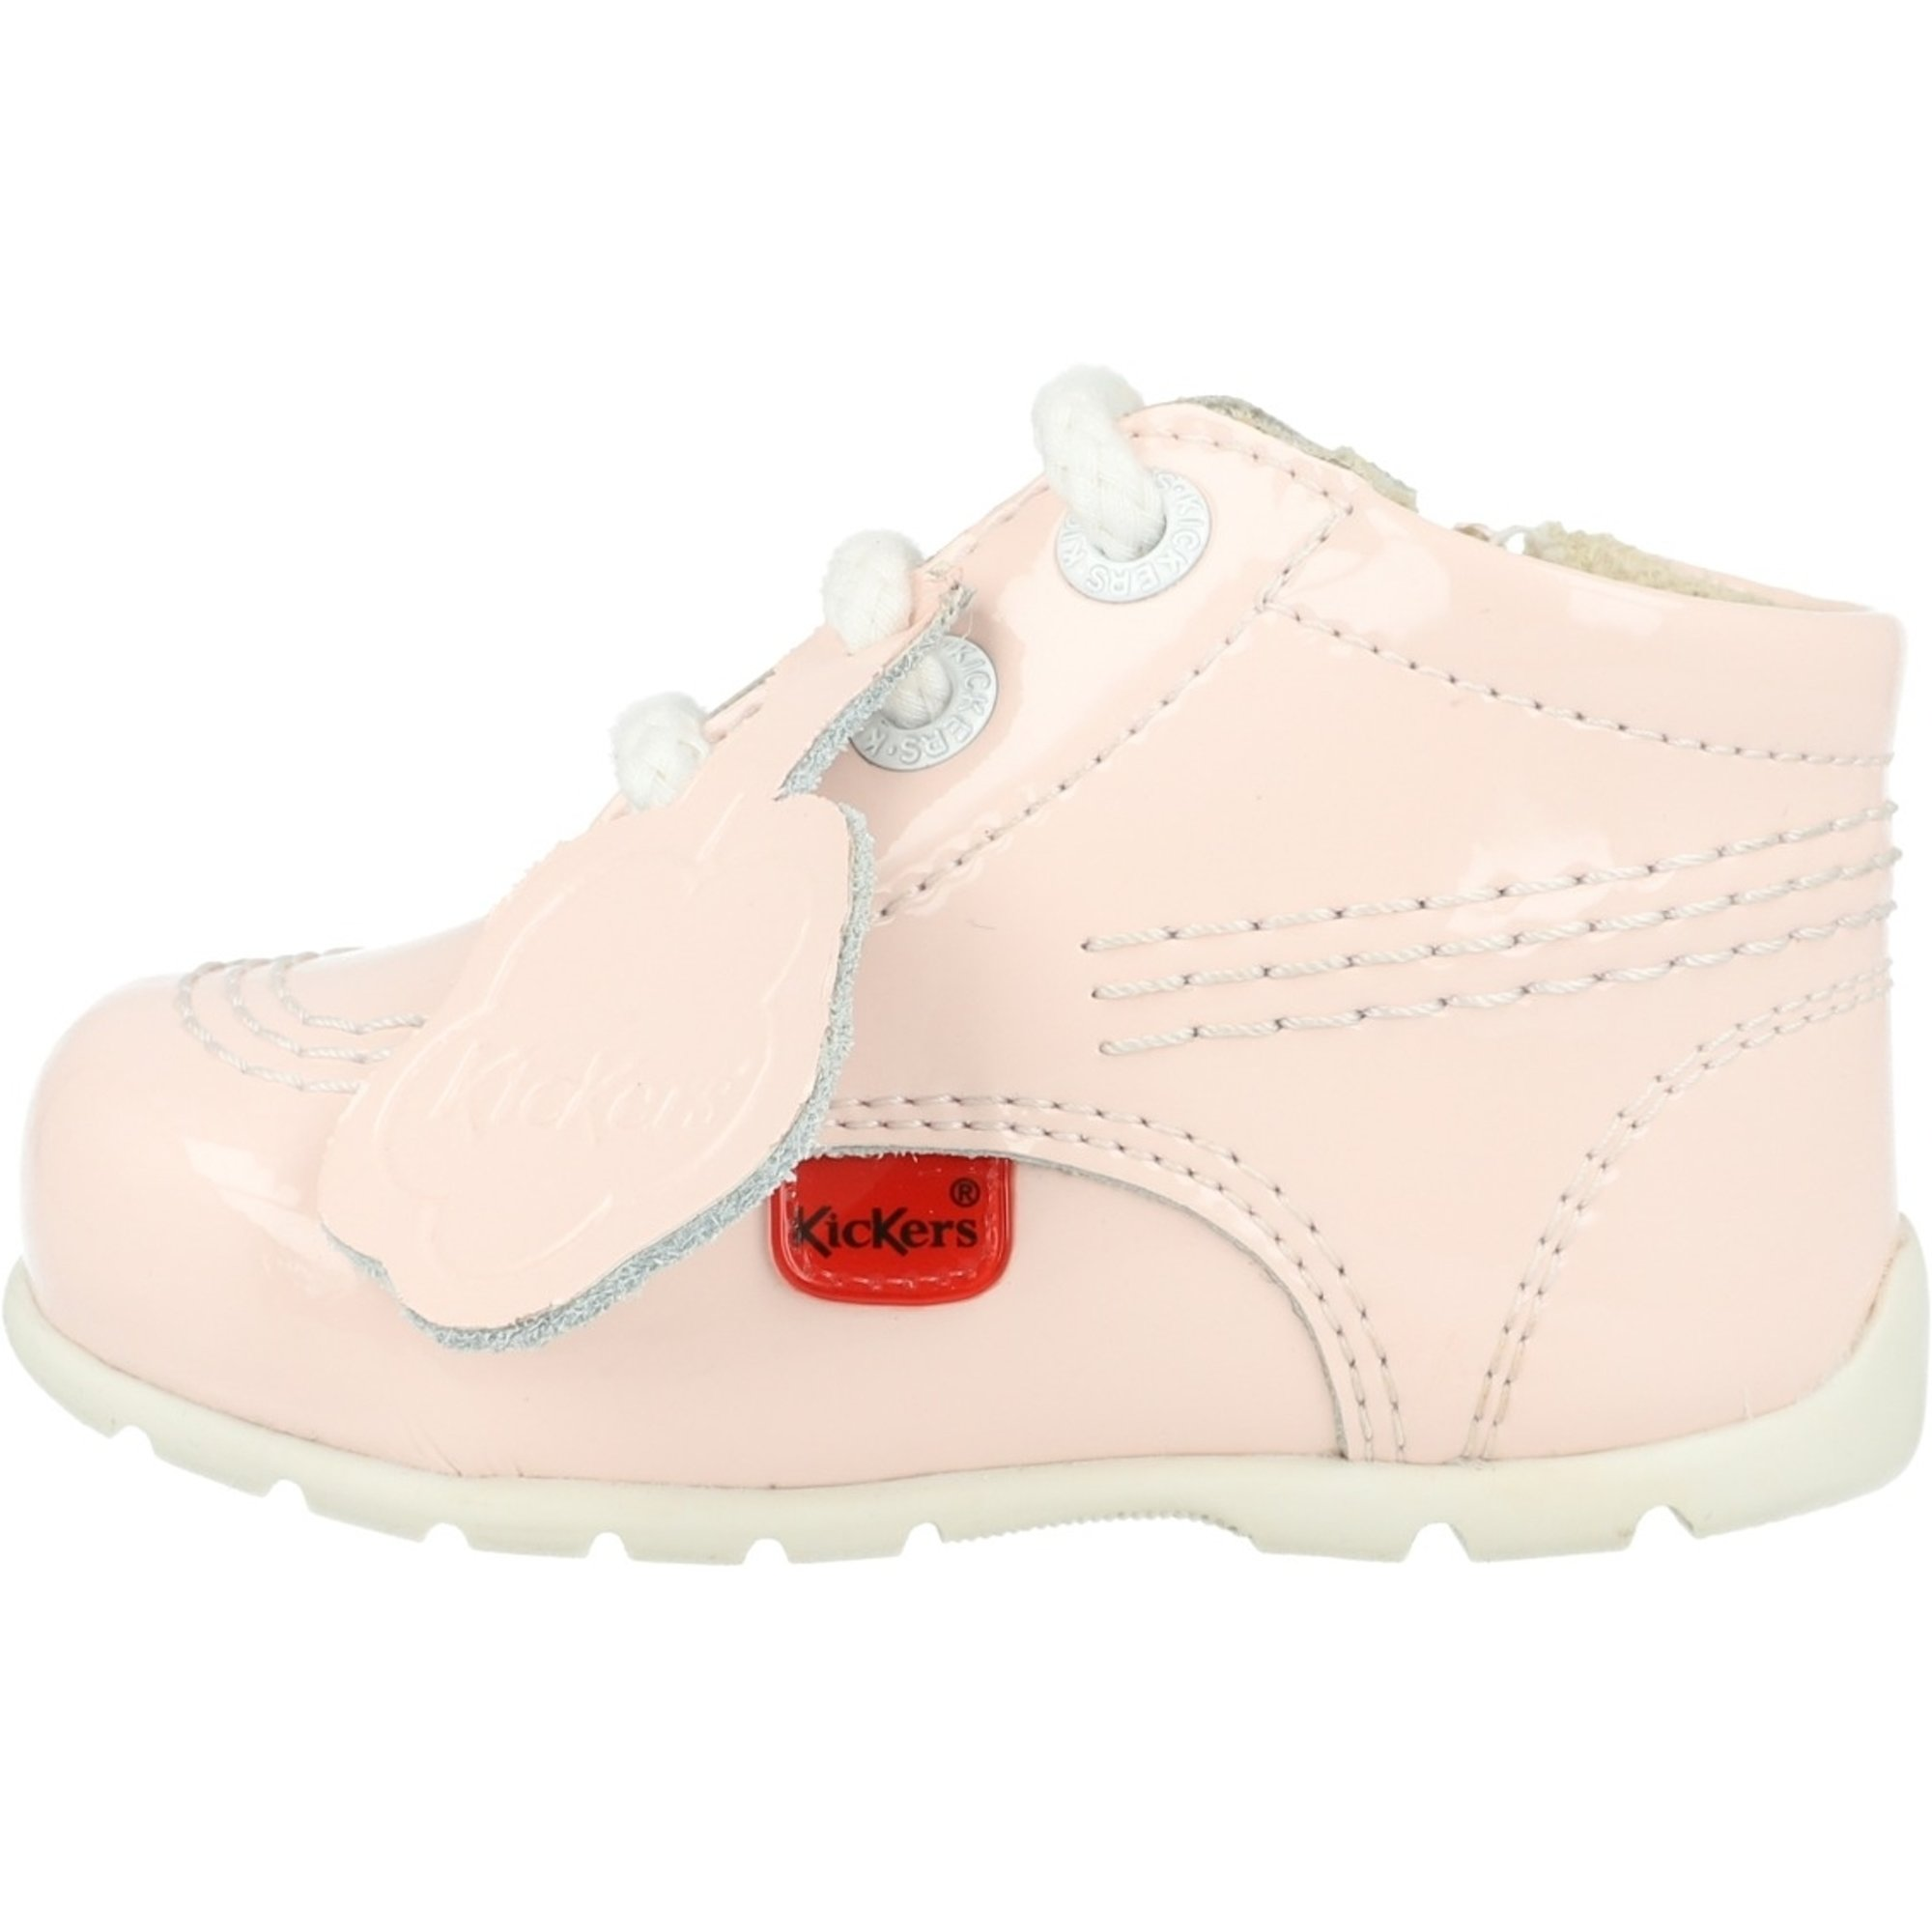 Kickers Kick Hi B Light Pink Leather